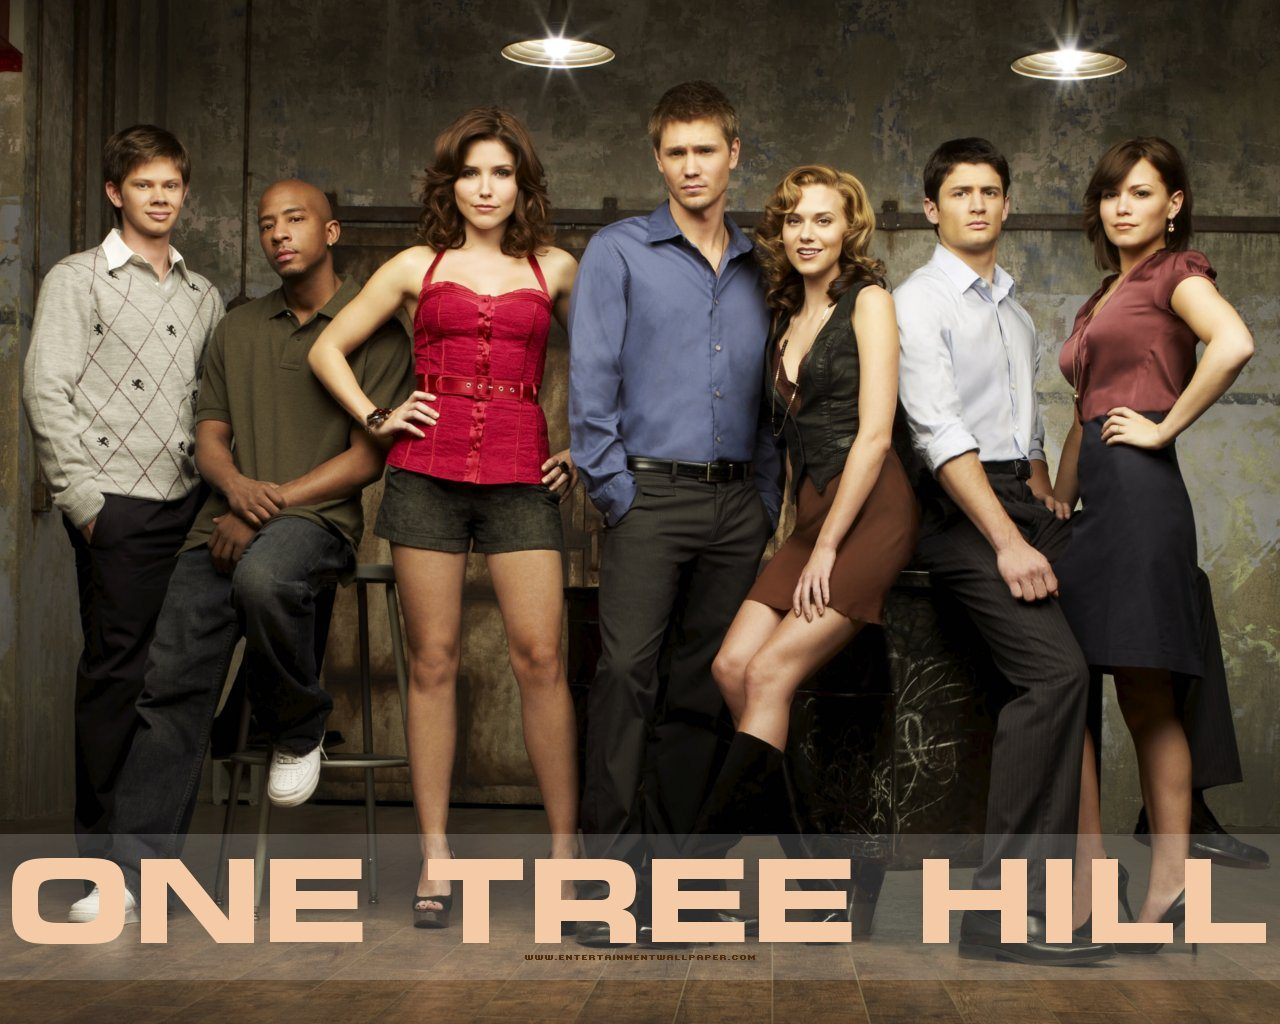 One Three Hill Onetreehill